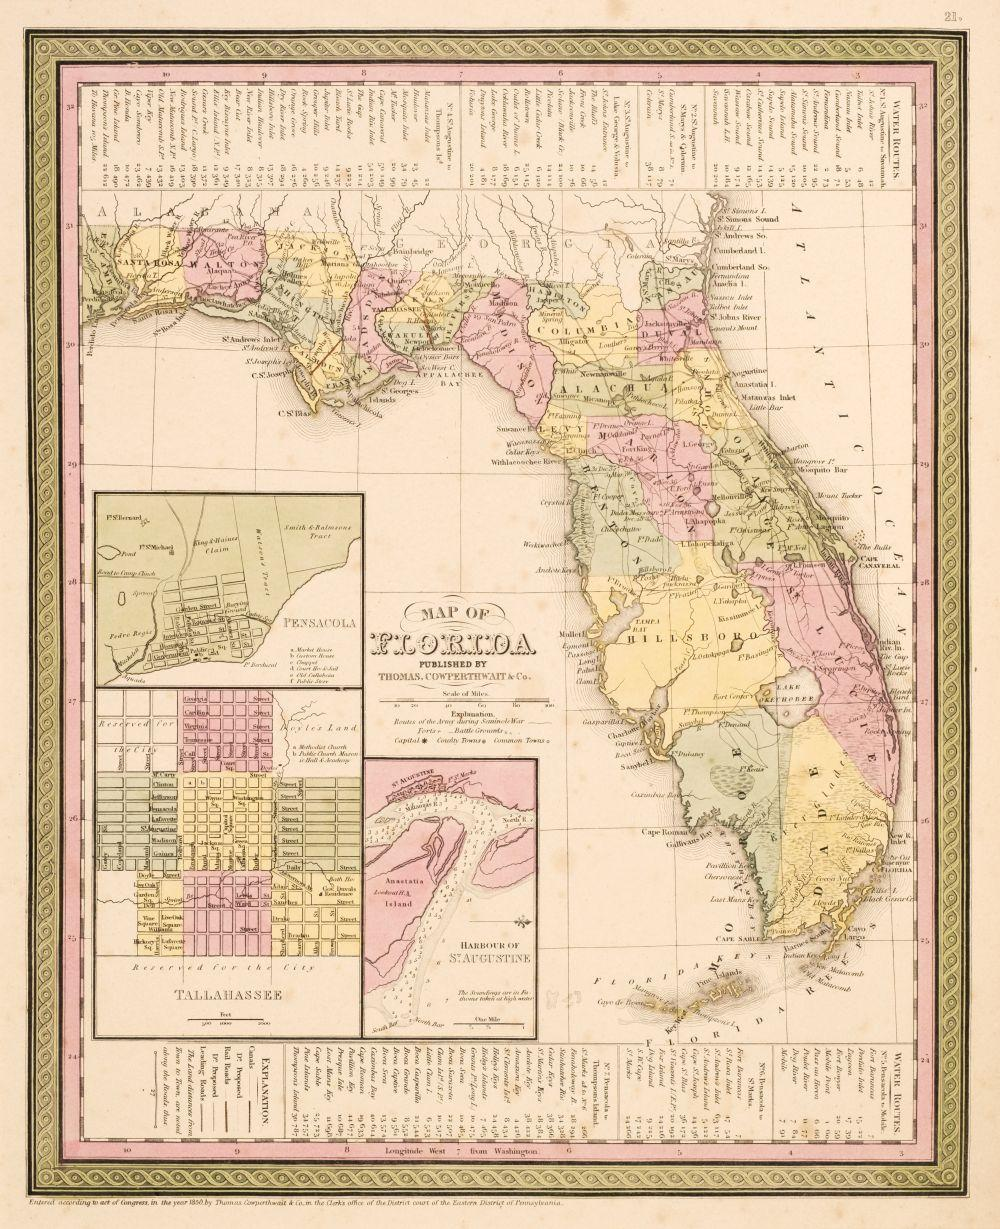 Cowperthwait (Thomas). Twenty-four maps of American States and Cities, 1850